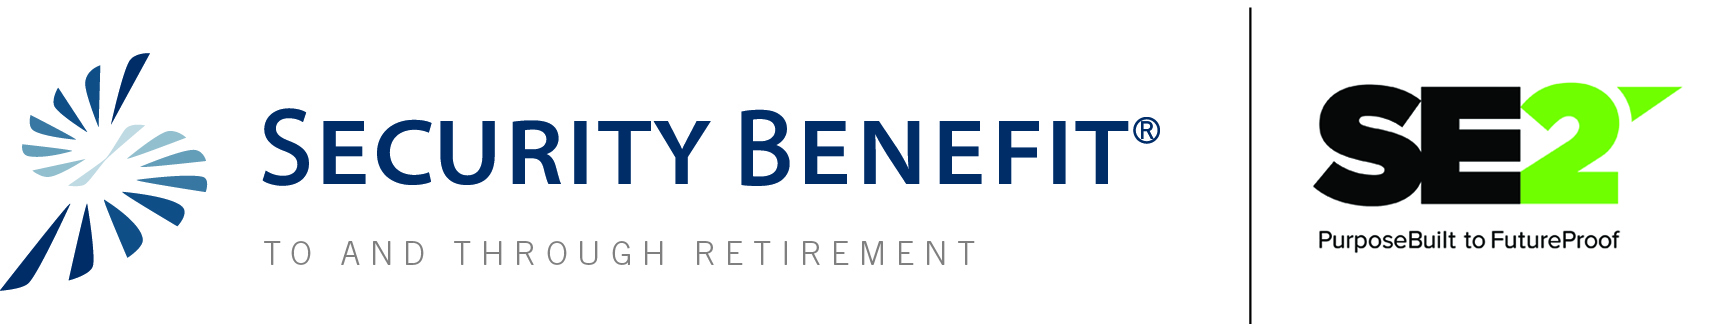 Security Benefit & SE2 logo